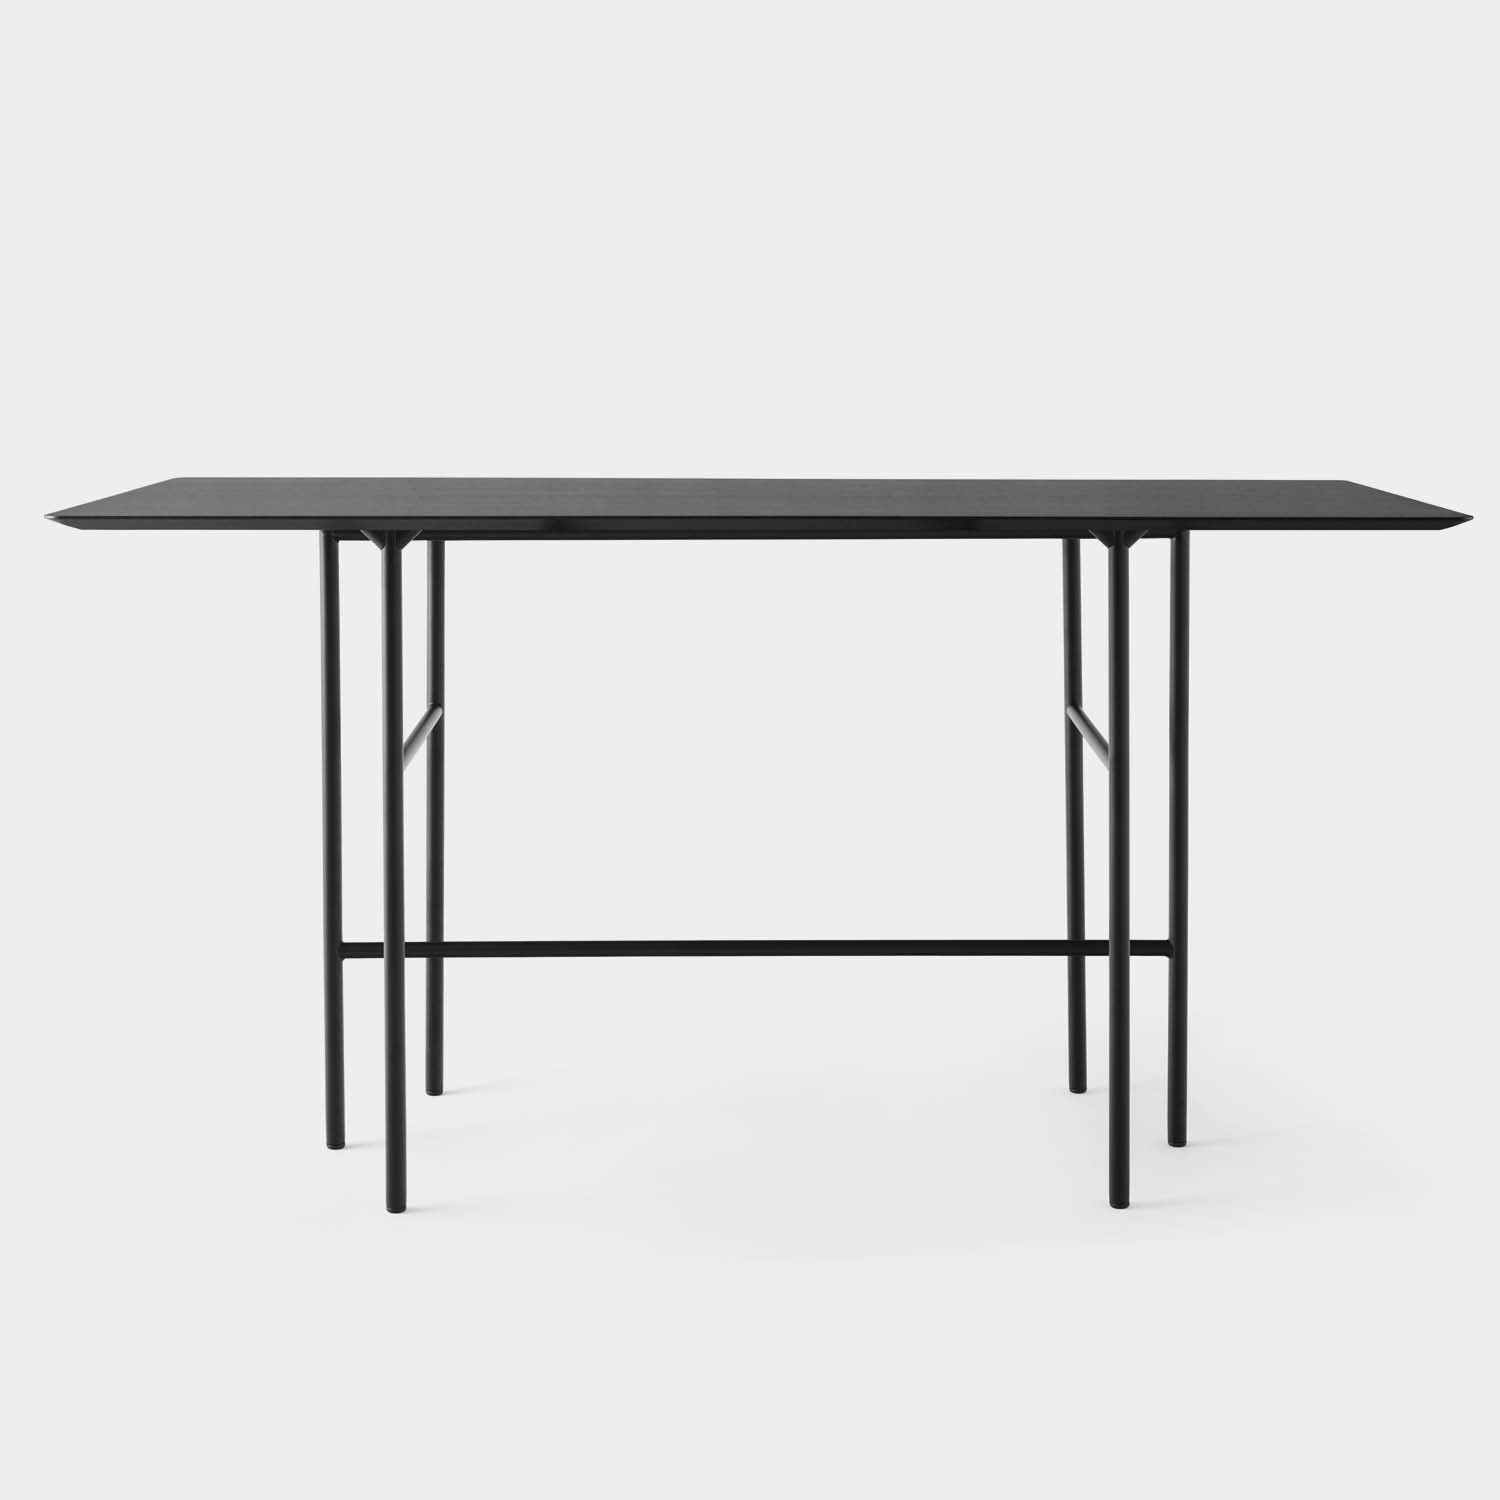 Snaregade Bar Table, Linoleum Top, Black Base